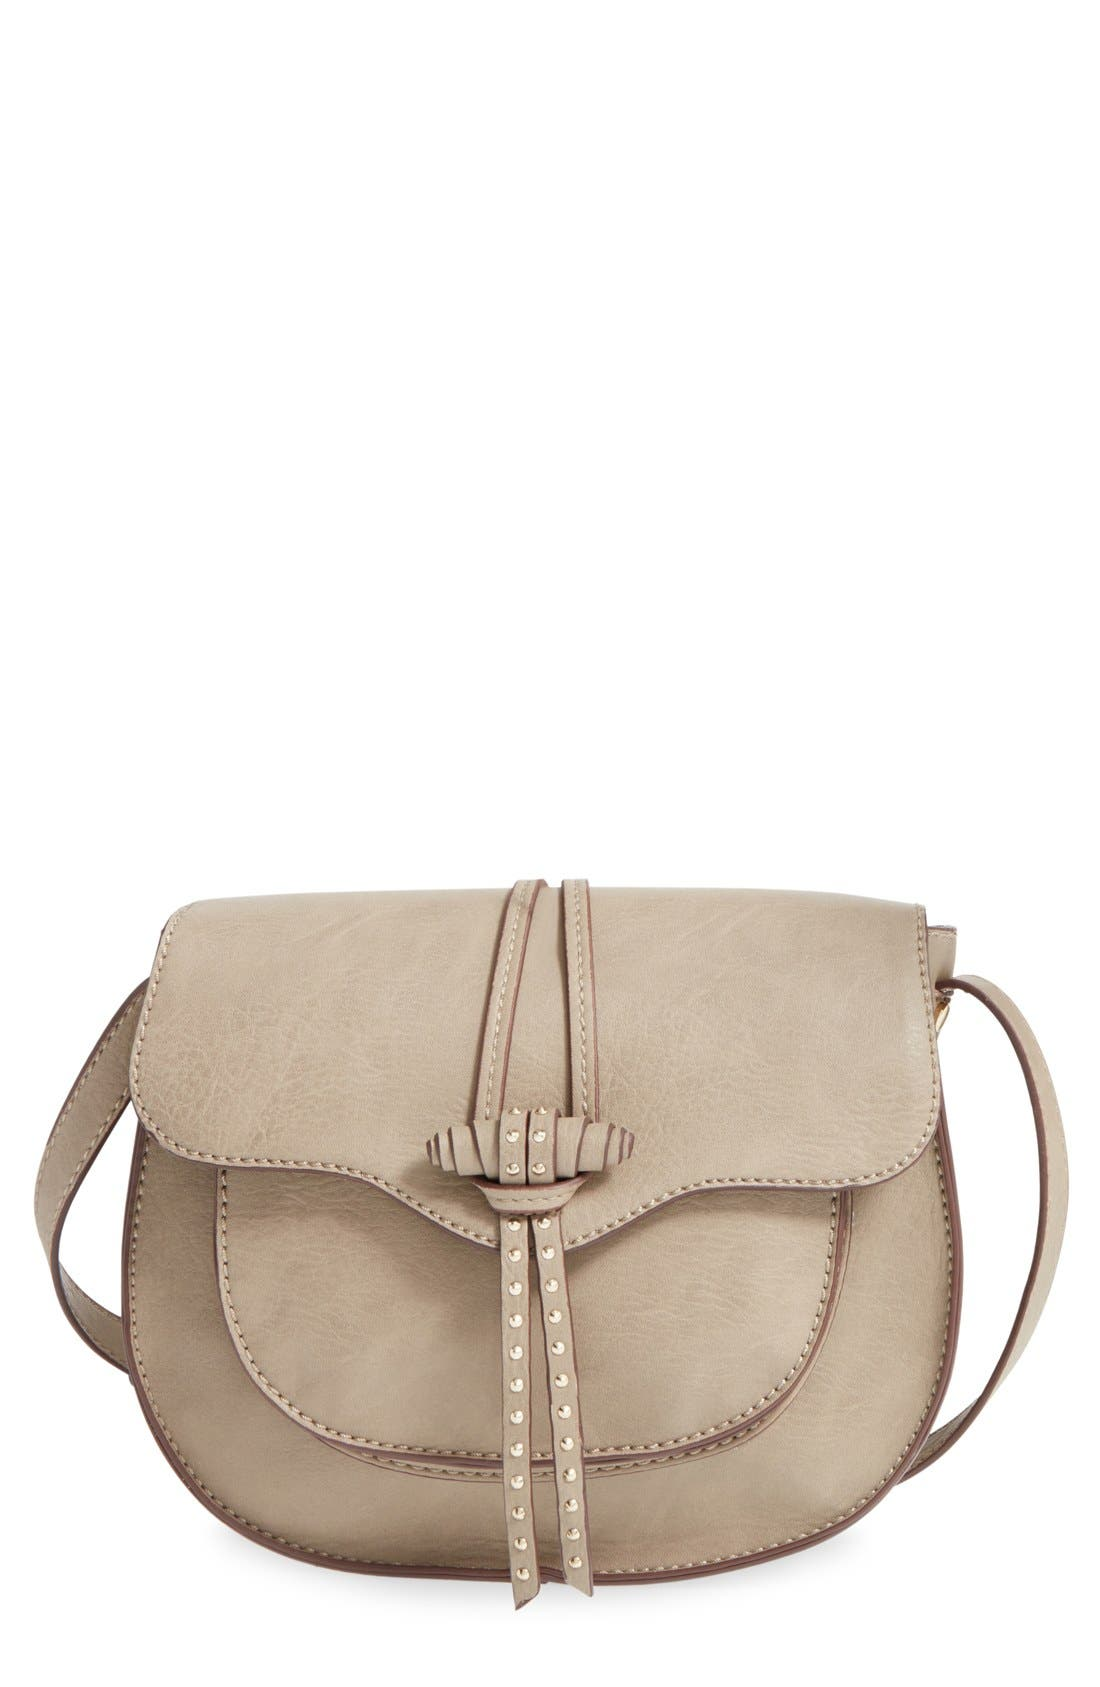 Alternate Image 1 Selected - Steven by Steve Madden 'Bbianca' Faux Leather Crossbody Saddle Bag